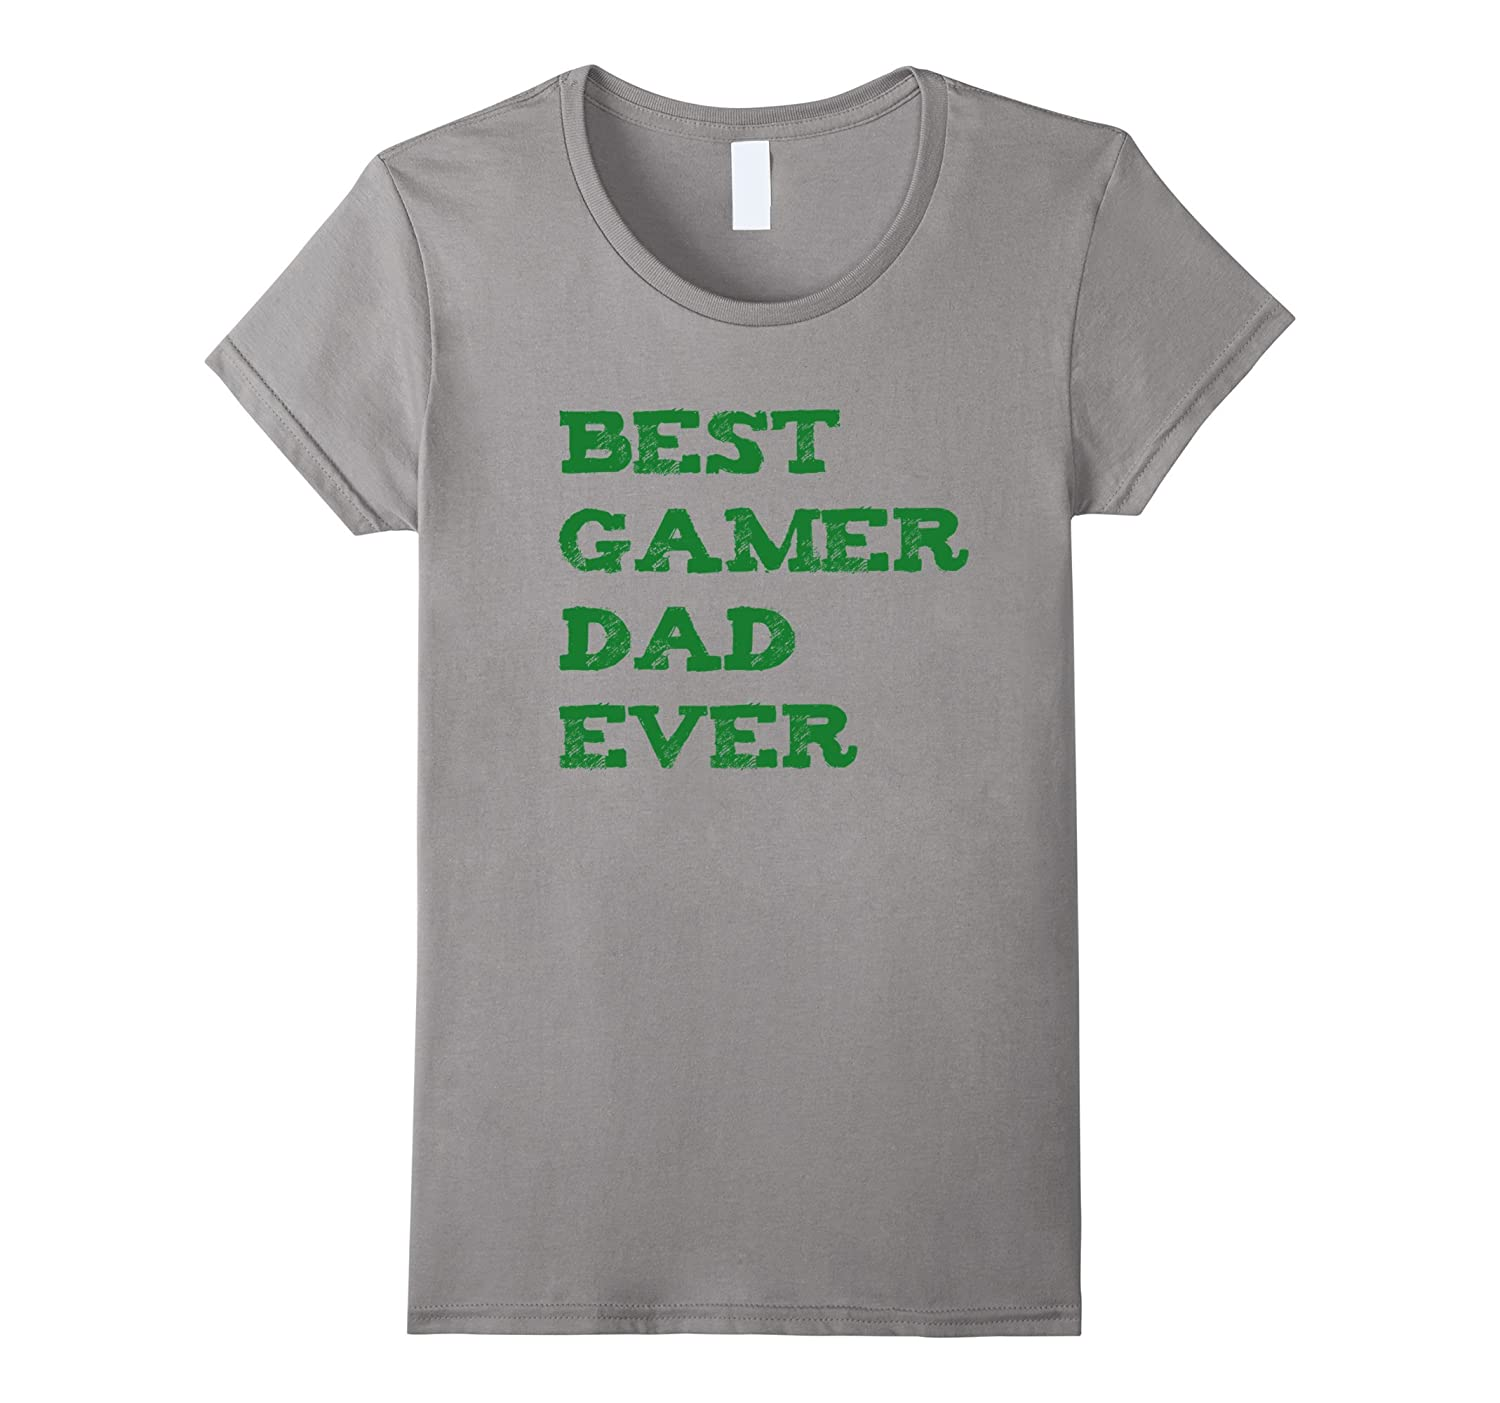 Best Gamer Dad Ever Shirt Funny Gaming Fathers Day Gift